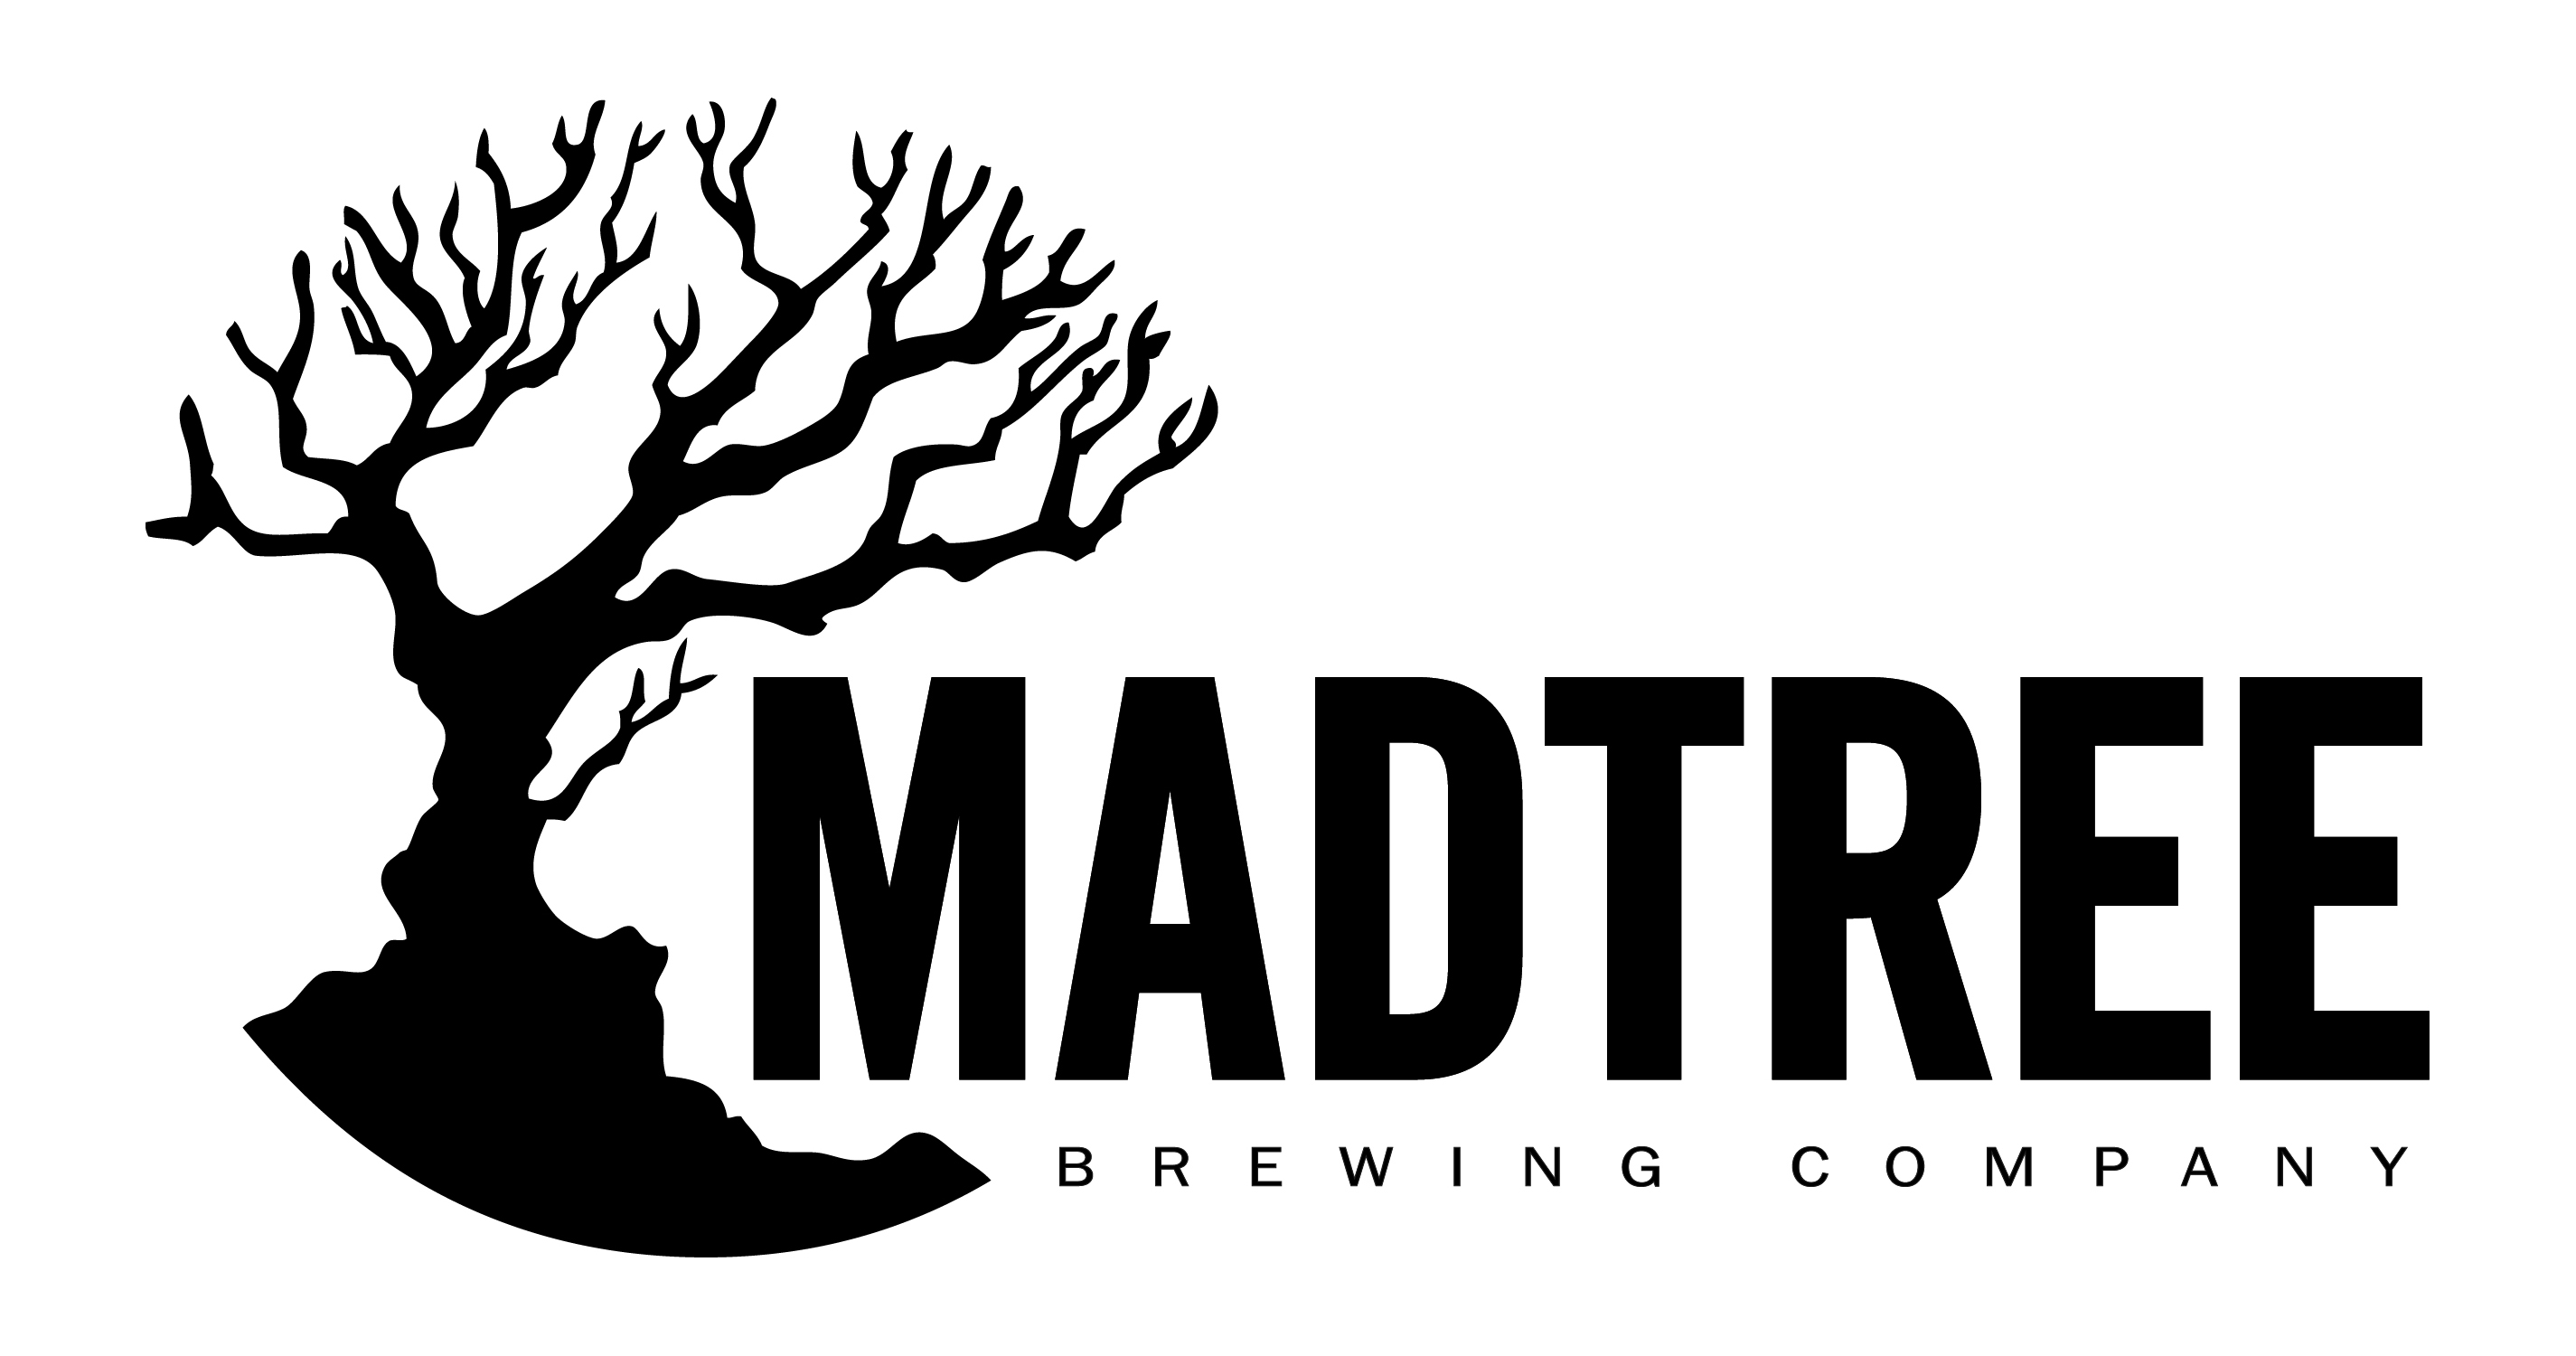 Thank you MadTree!